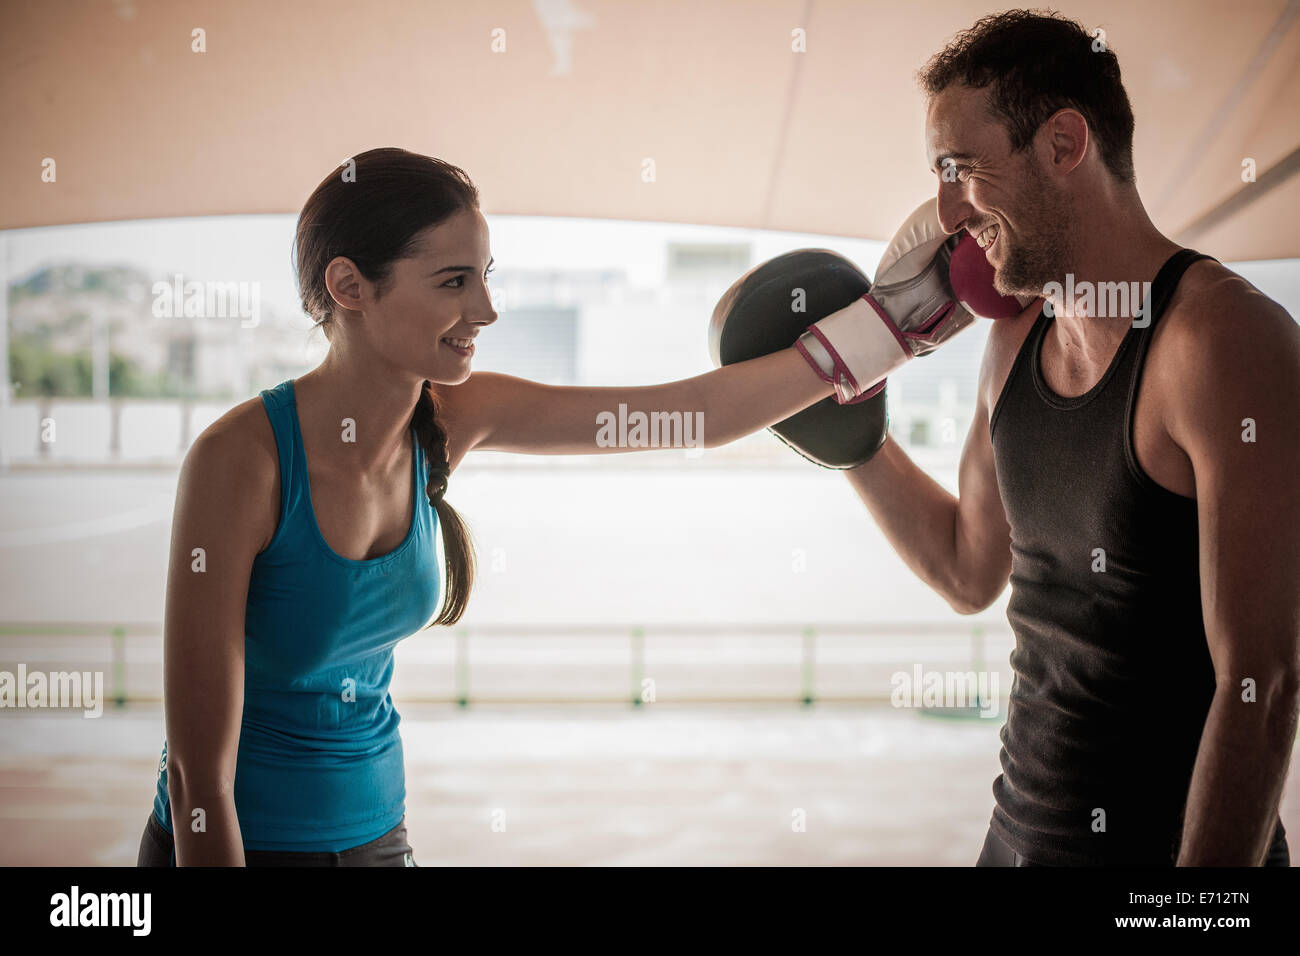 Young woman wearing boxing glove touching man's face - Stock Image